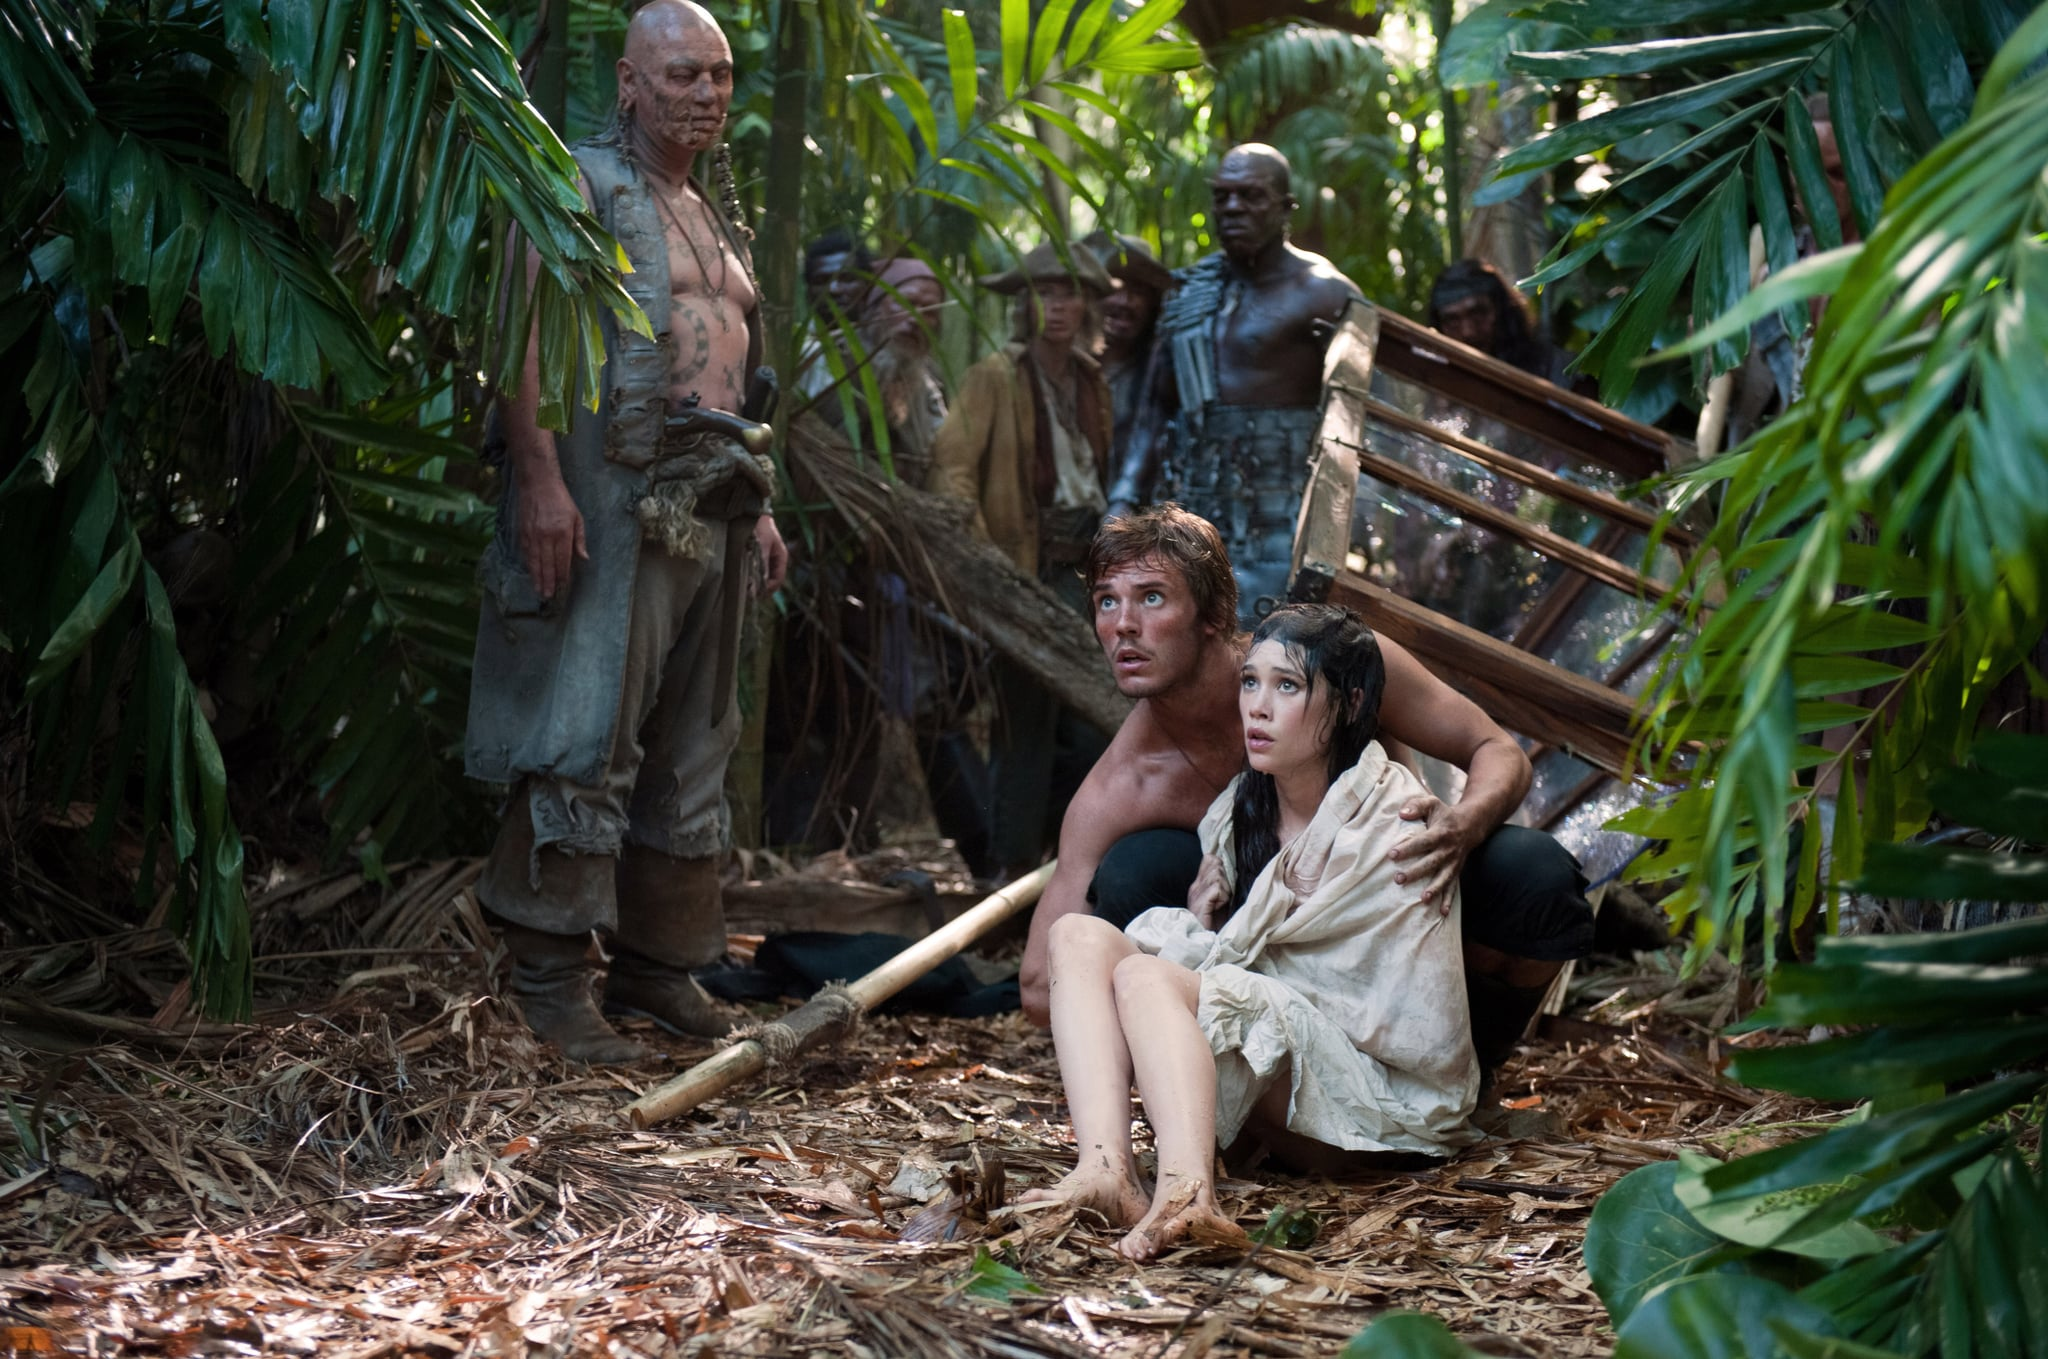 Pirates Of The Caribbean On Stranger Tides 2011 5 Places You Ve Seen Me Before You S Sam Claflin Popsugar Entertainment Photo 3